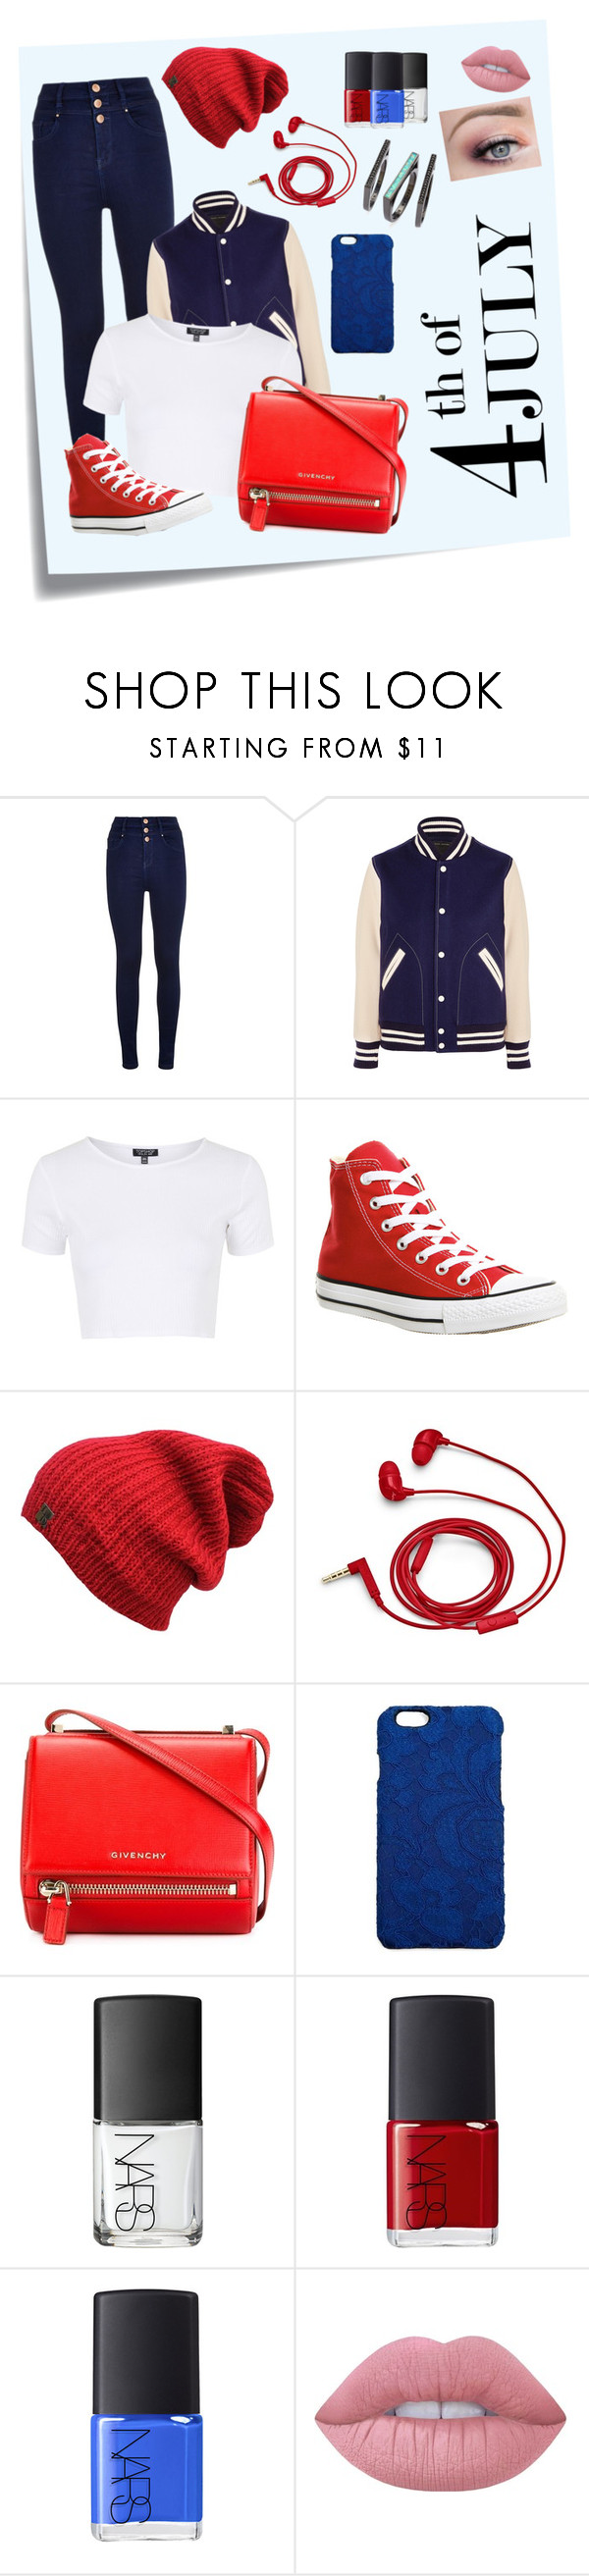 """73"" by lightning1208 on Polyvore featuring Post-It, Marc Jacobs, Topshop, Converse, FOSSIL, Givenchy, Dolce&Gabbana, NARS Cosmetics, Lime Crime and Kendra Scott"